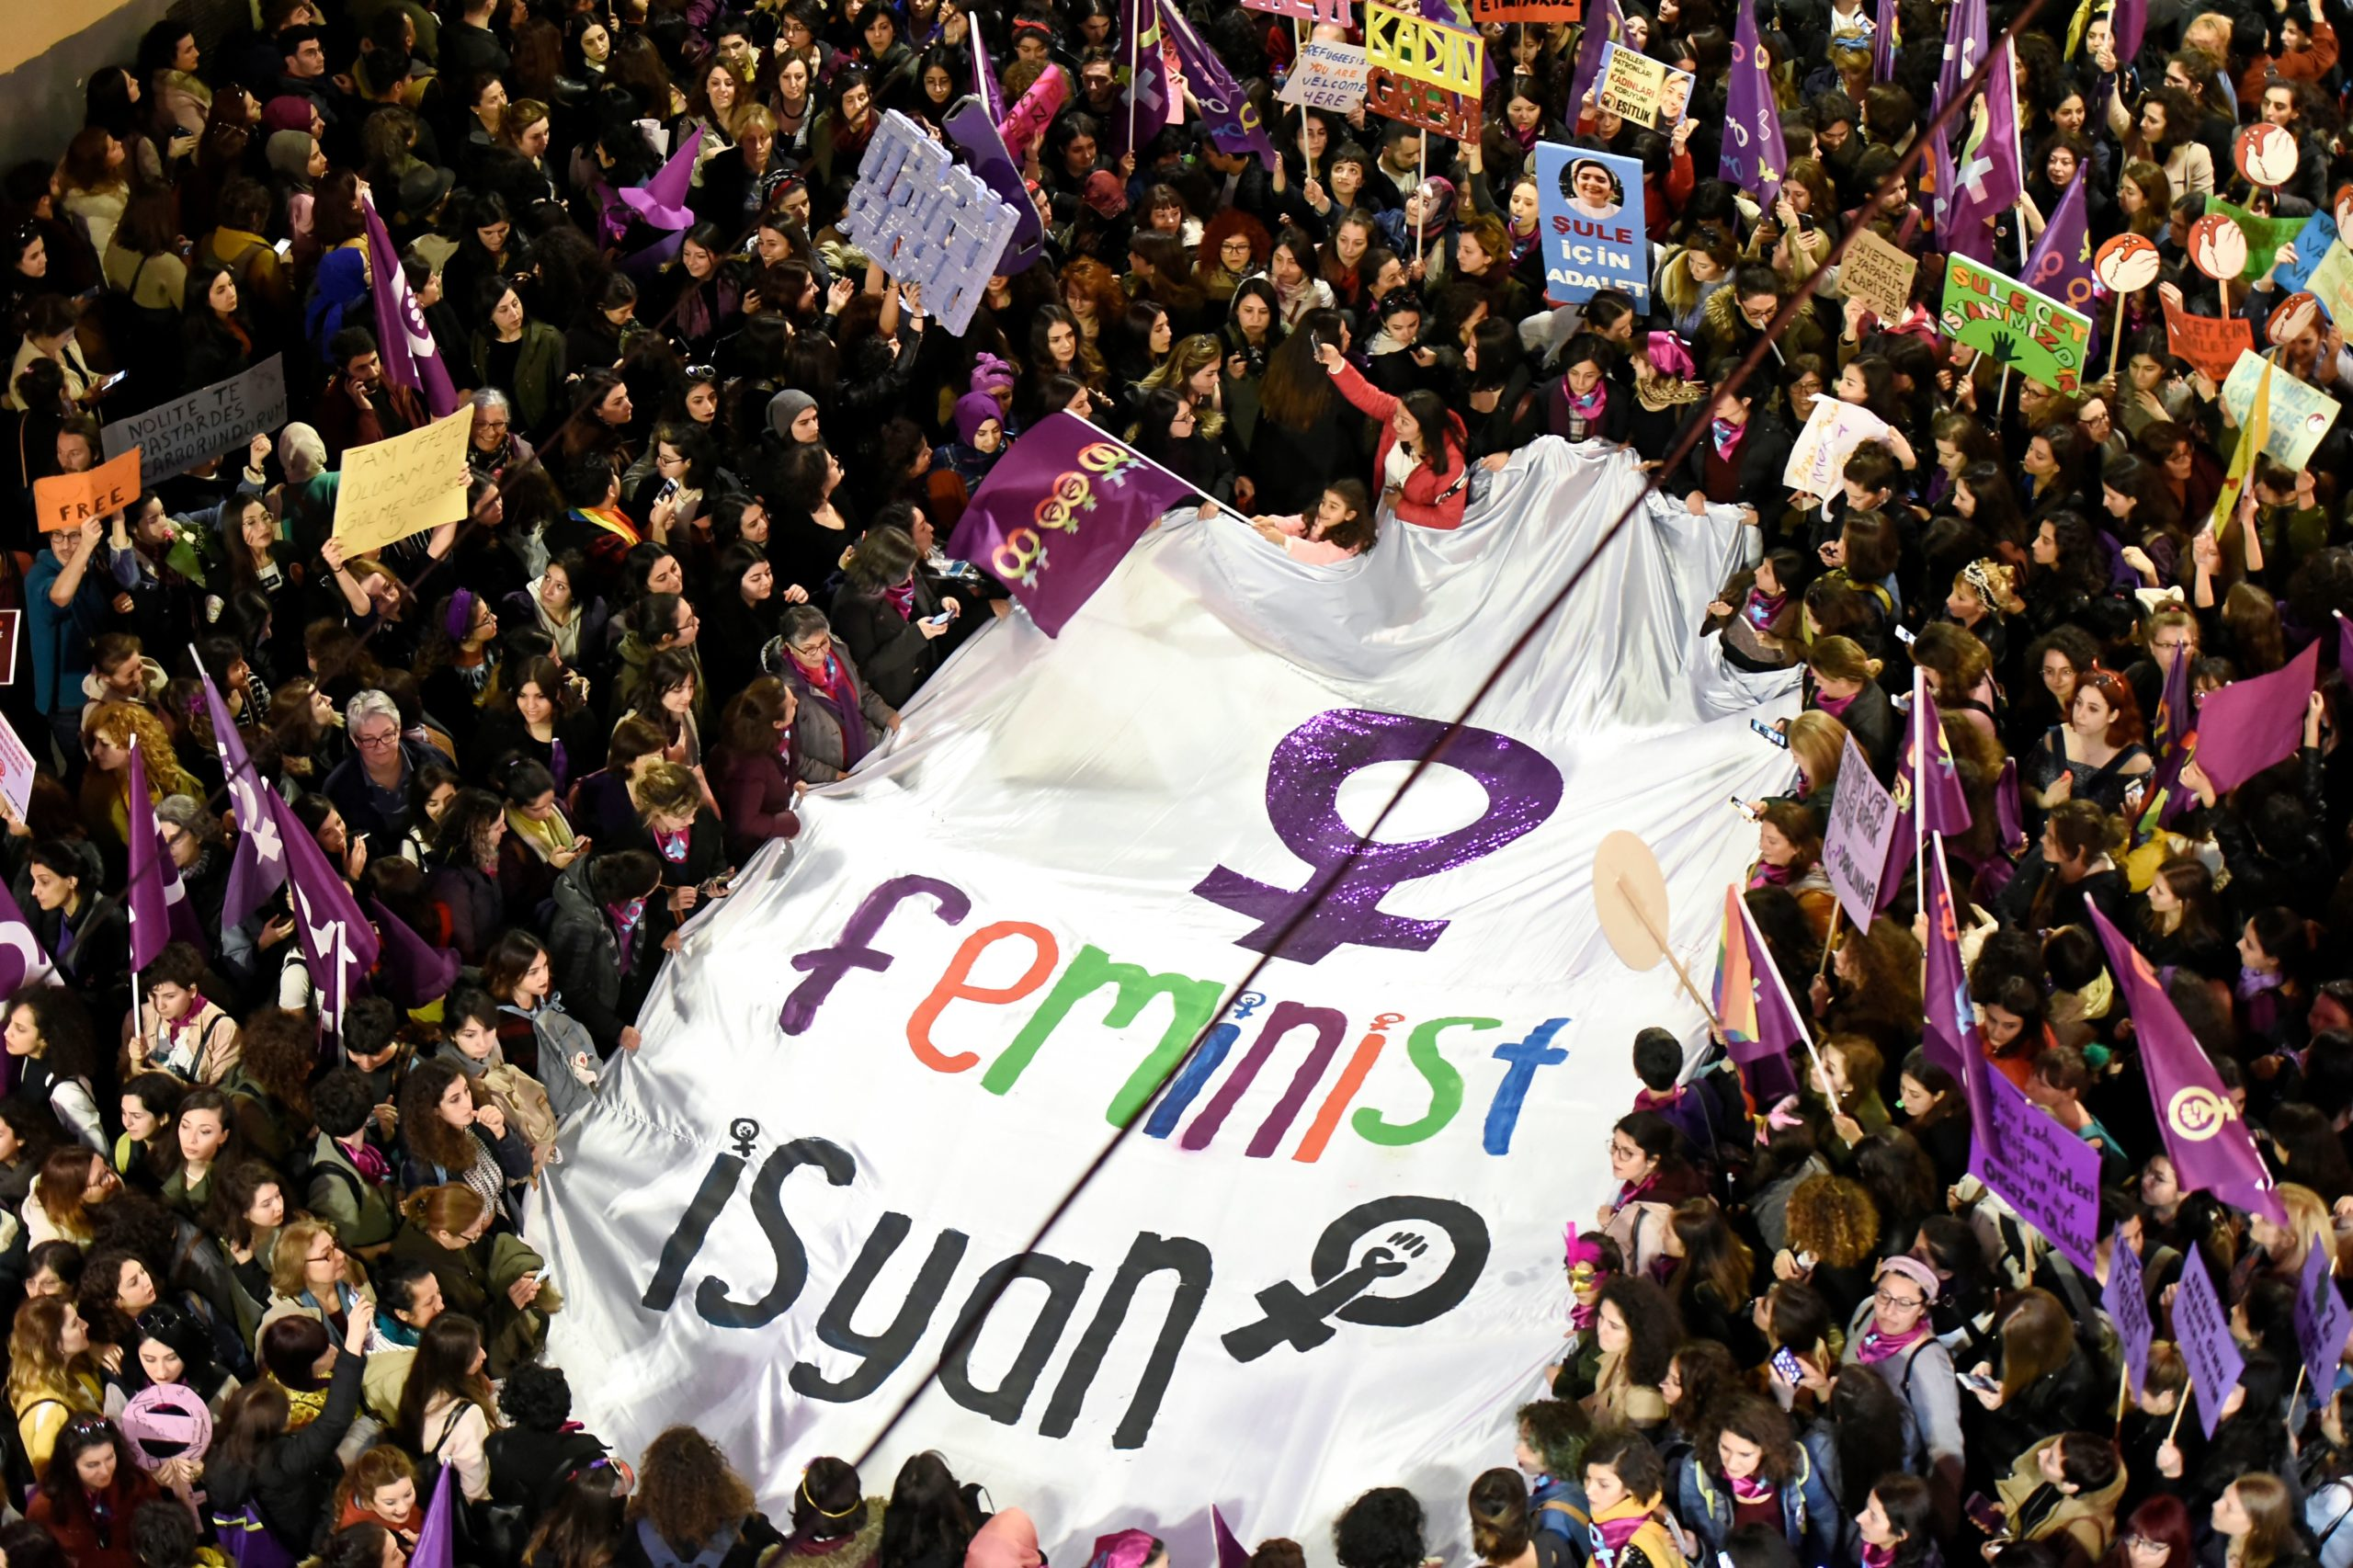 Ottoman Feminists and their Struggle in Modern Day Turkey